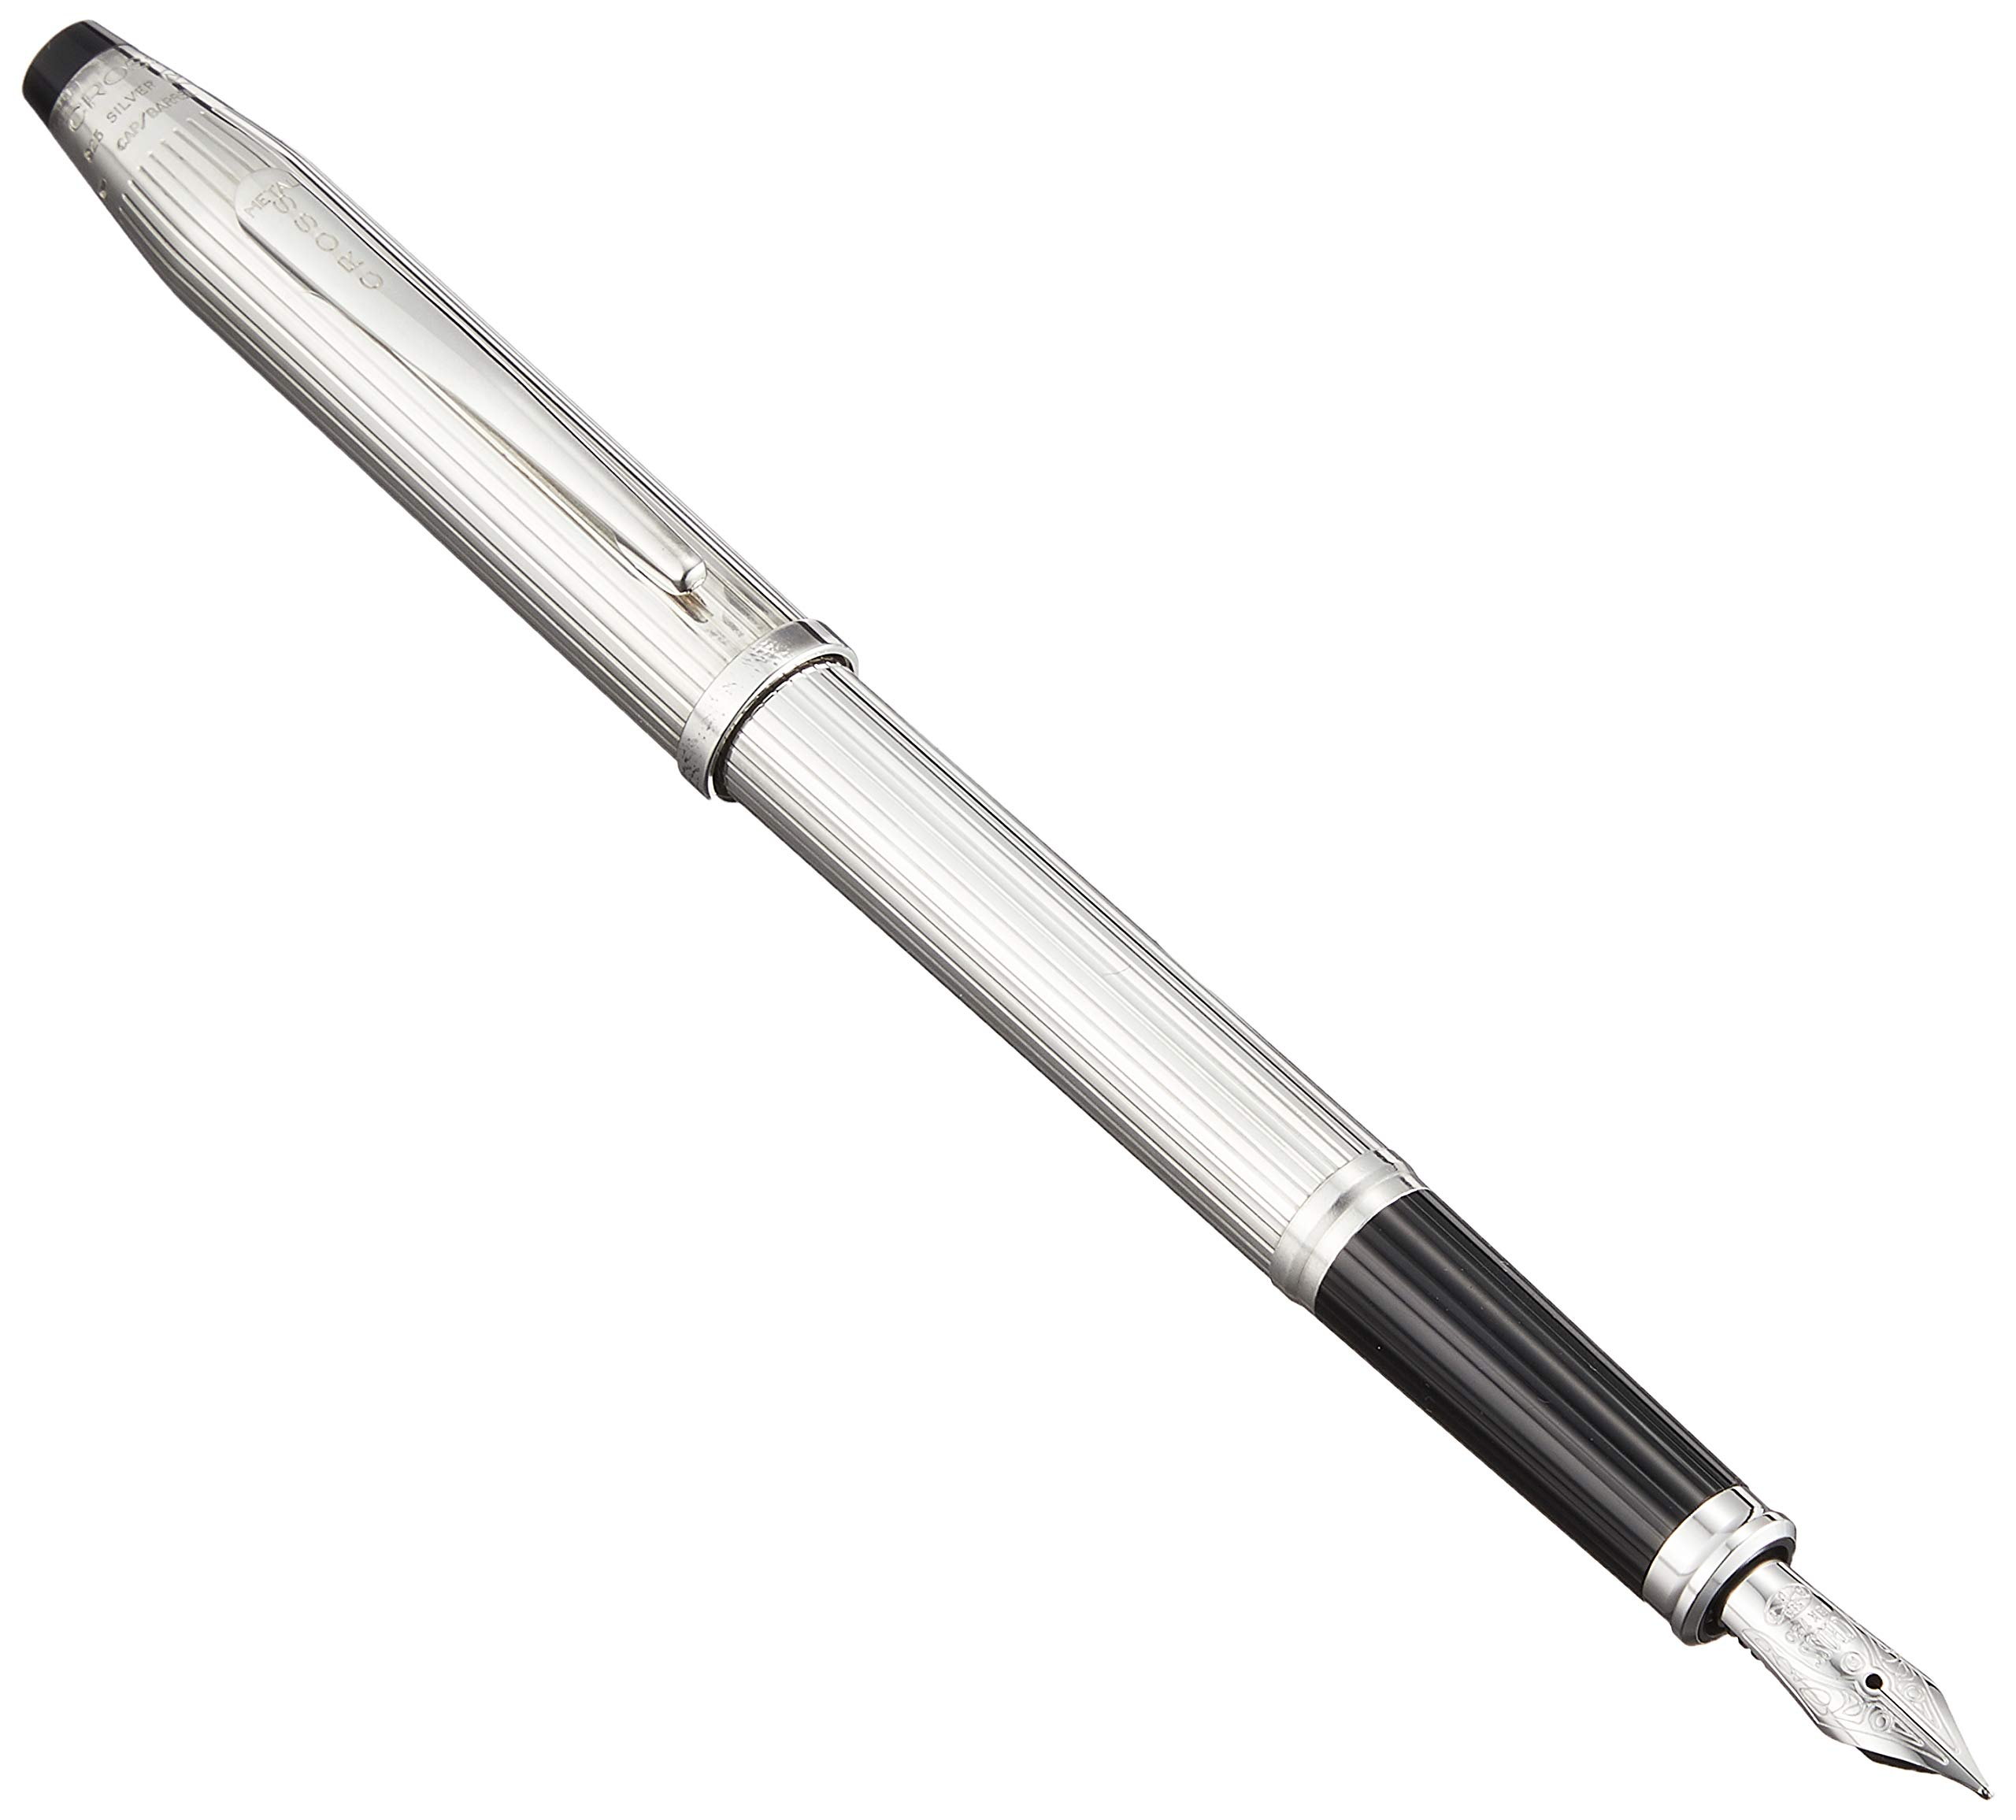 Cross Century II Sterling Silver Fountain Pen with Fine Nib (HN3009-FY) by Cross (Image #1)